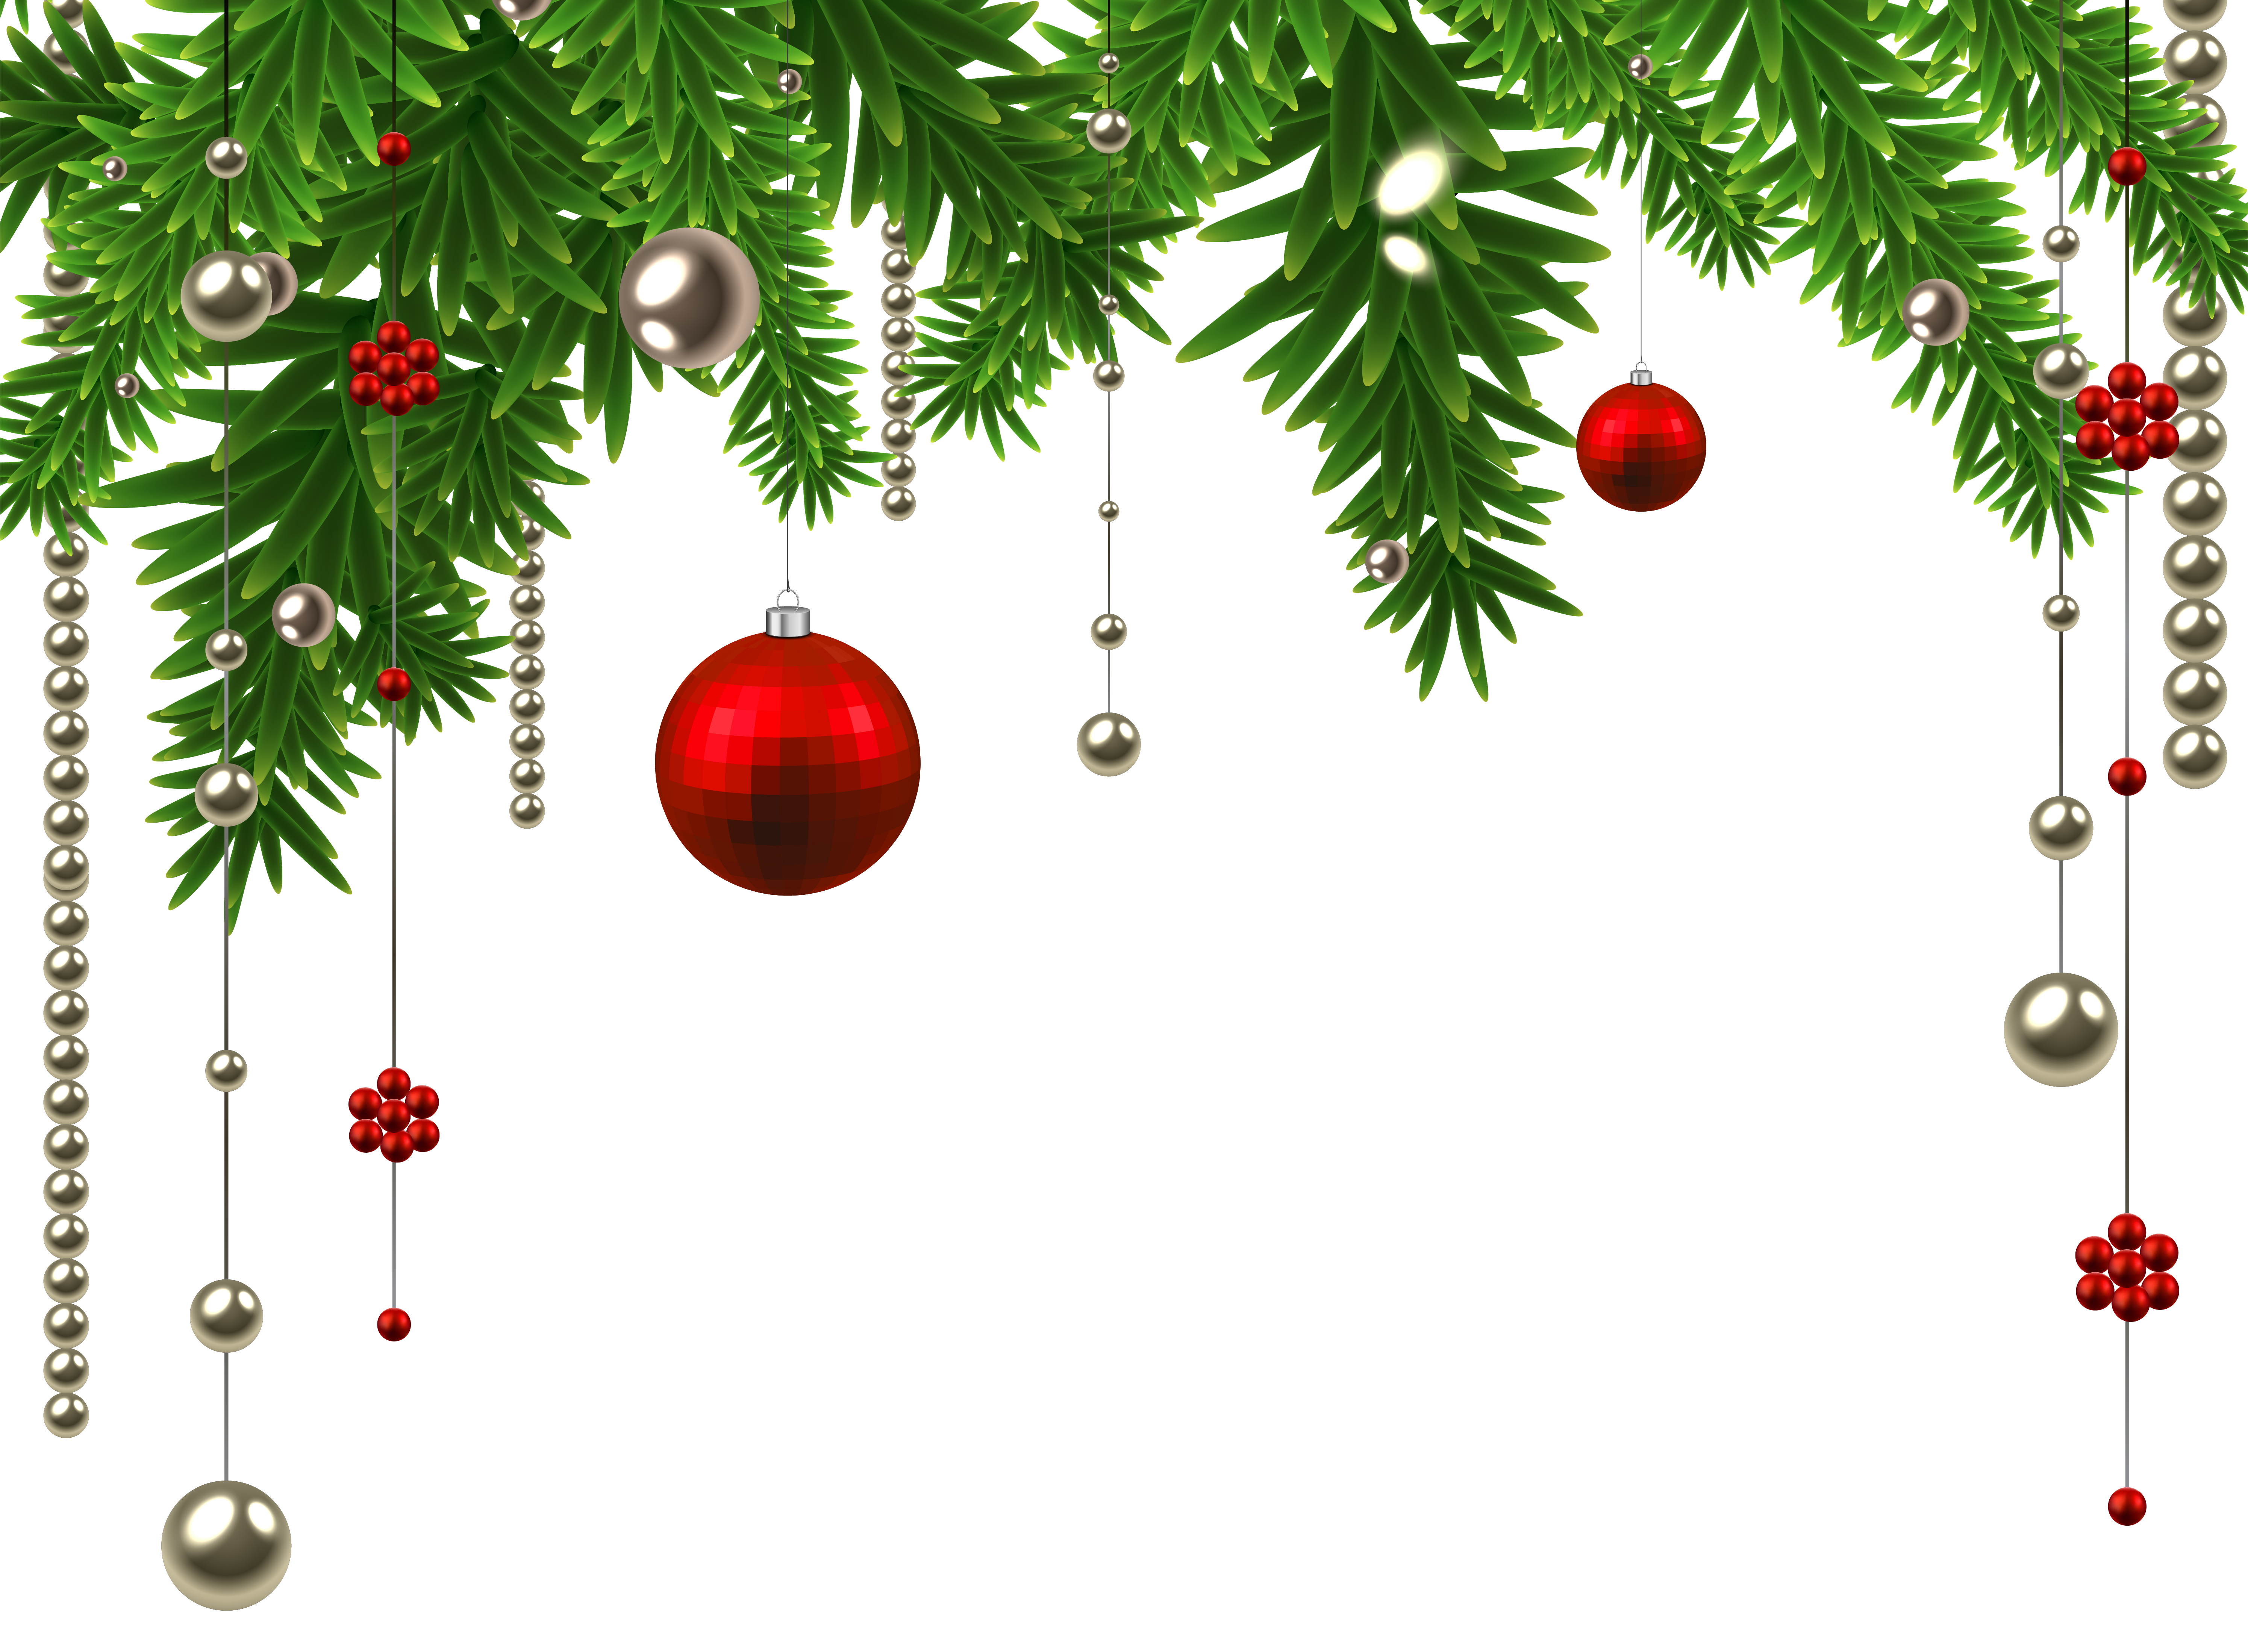 Ball ornament picture frame clipart free Pin by good on god   Christmas, Christmas ornaments, Christmas tree ... free